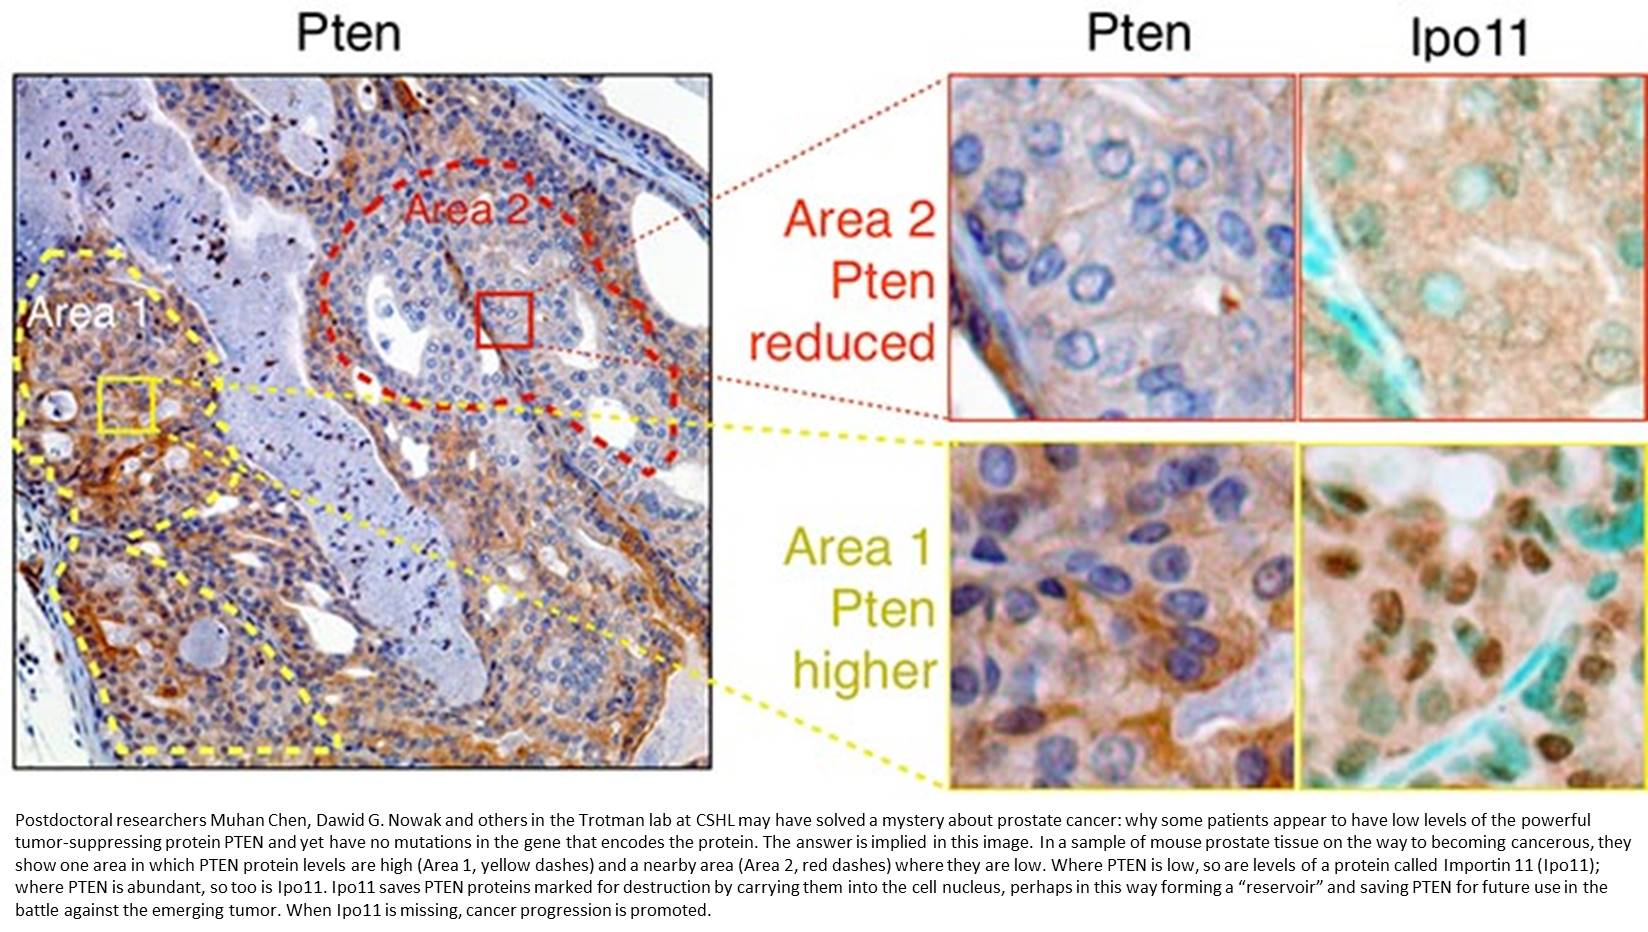 The nuclear transport receptor Importin-11 is a tumor suppressor that maintains PTEN protein